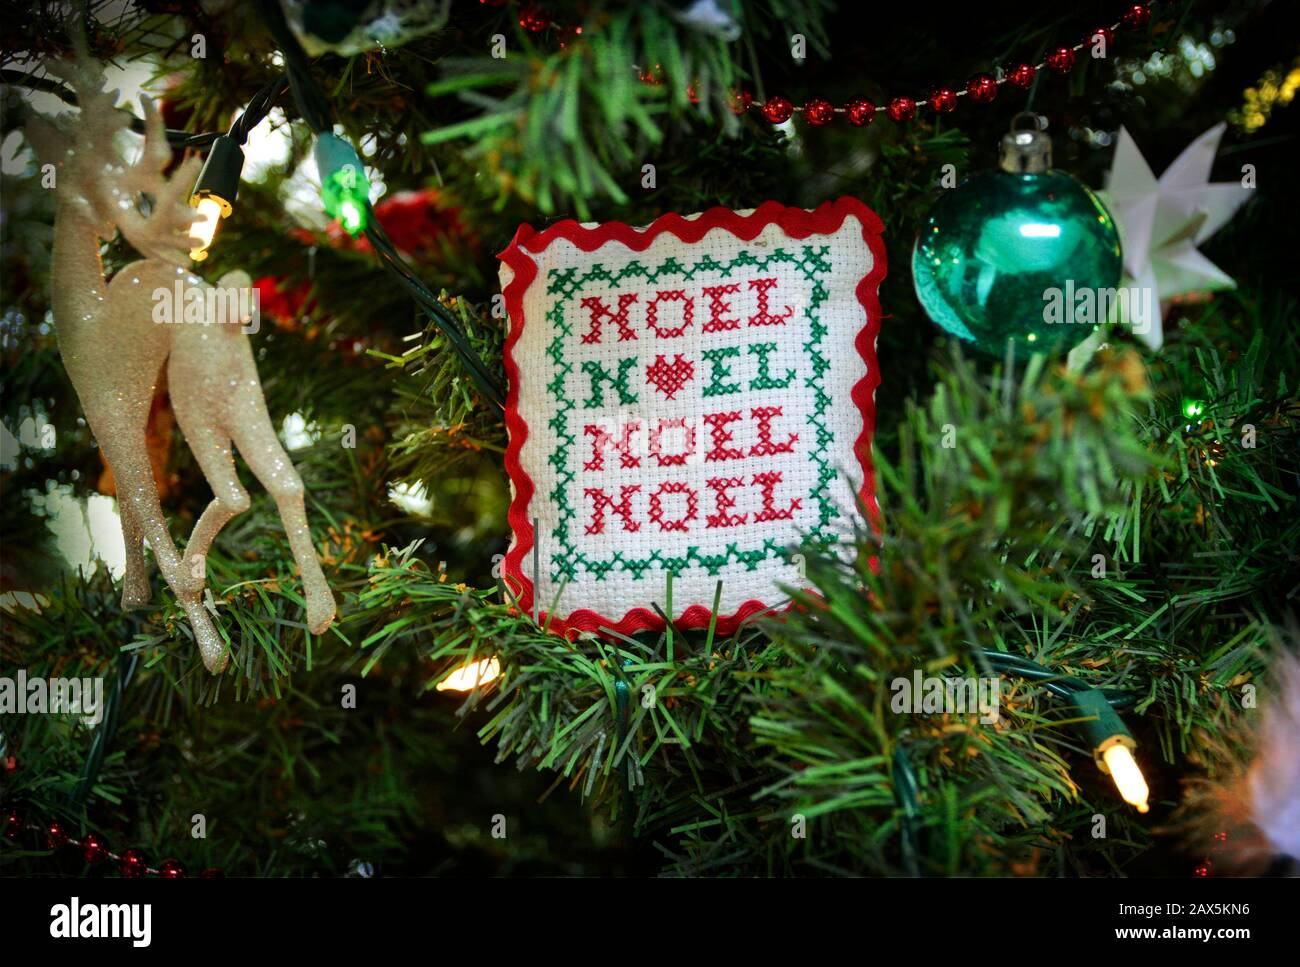 Hand stitched Christmas ornament with the word Noel embroidered on it. Handmade needlepoint Christmas decoration hanging on the tree. Stock Photo